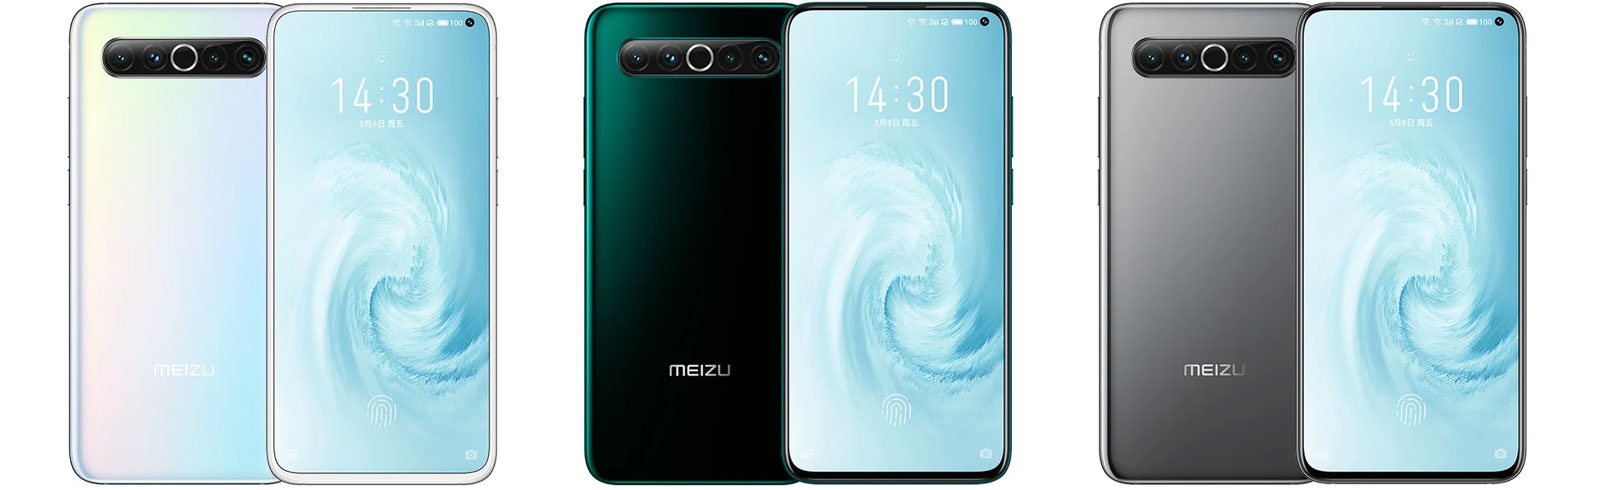 Meizu 17 Pro and Meizu 17 are official - specifications and prices